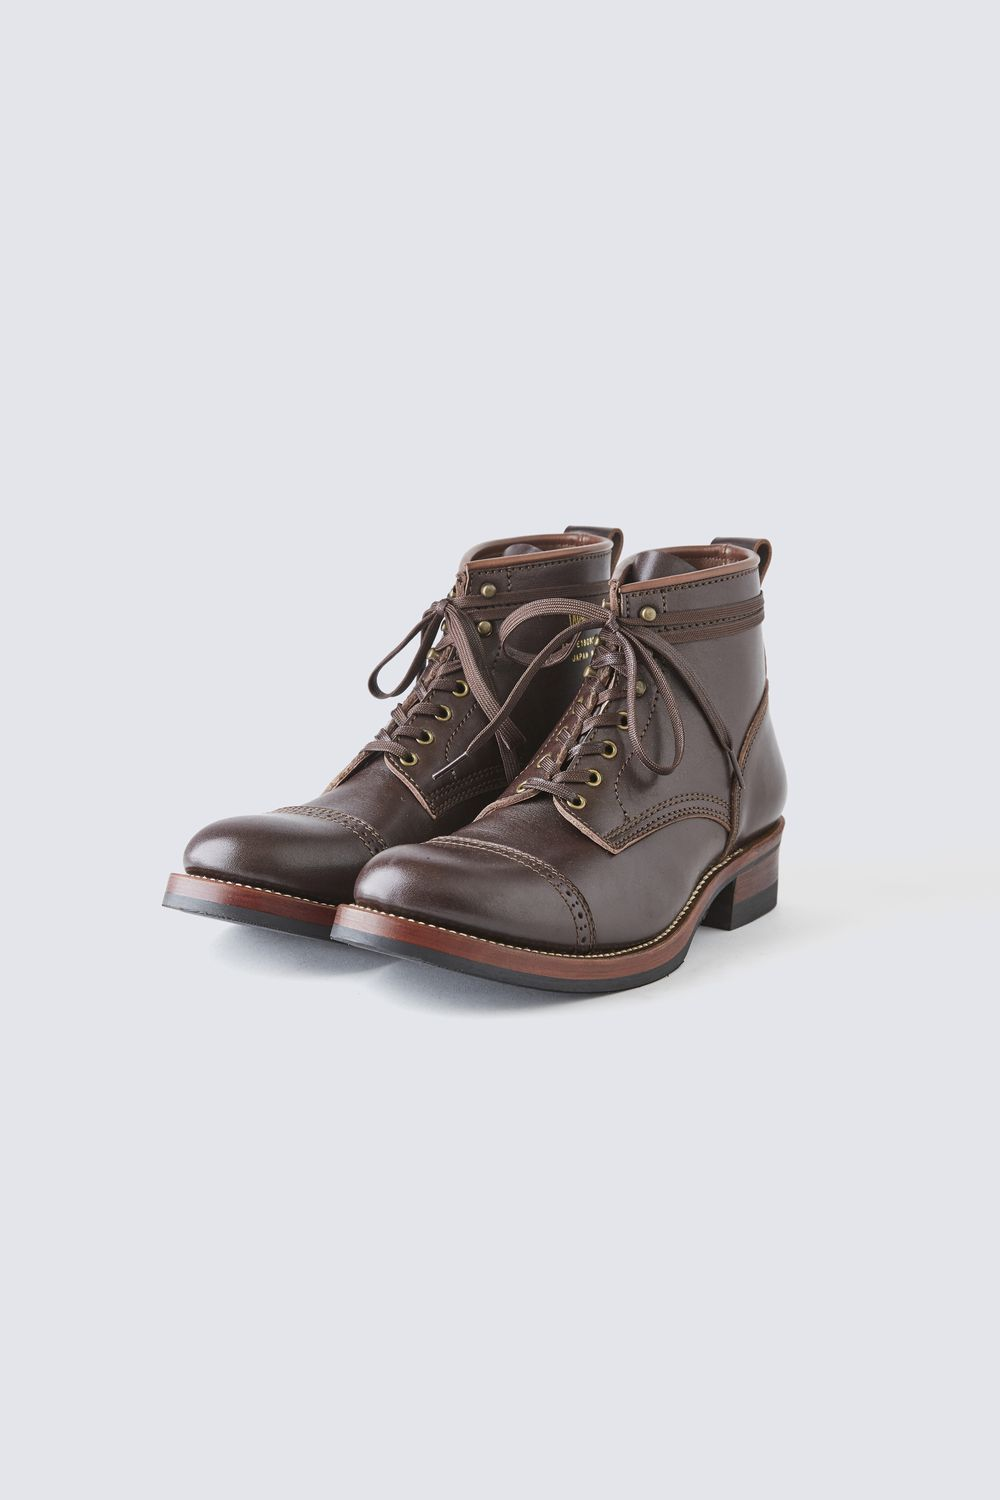 BUILT TO ORDER - AB-02C STEERHIDE CAP TOE LACE-UP BOOTS